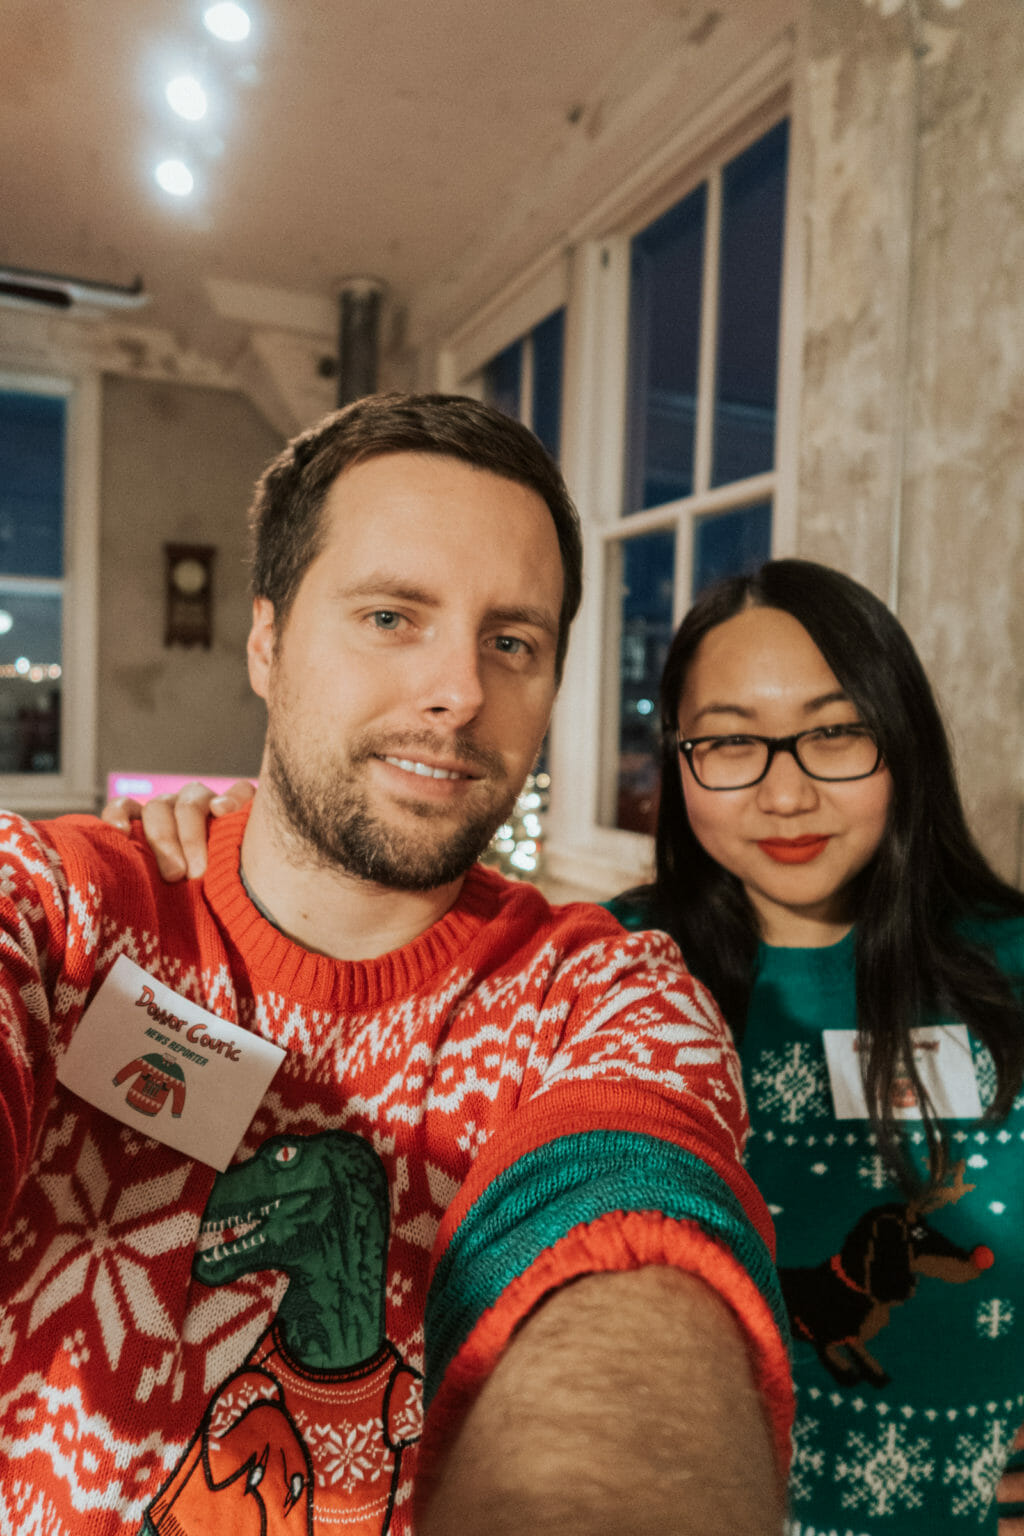 Murder Mystery Dinner - Ugly Sweater Christmas Party